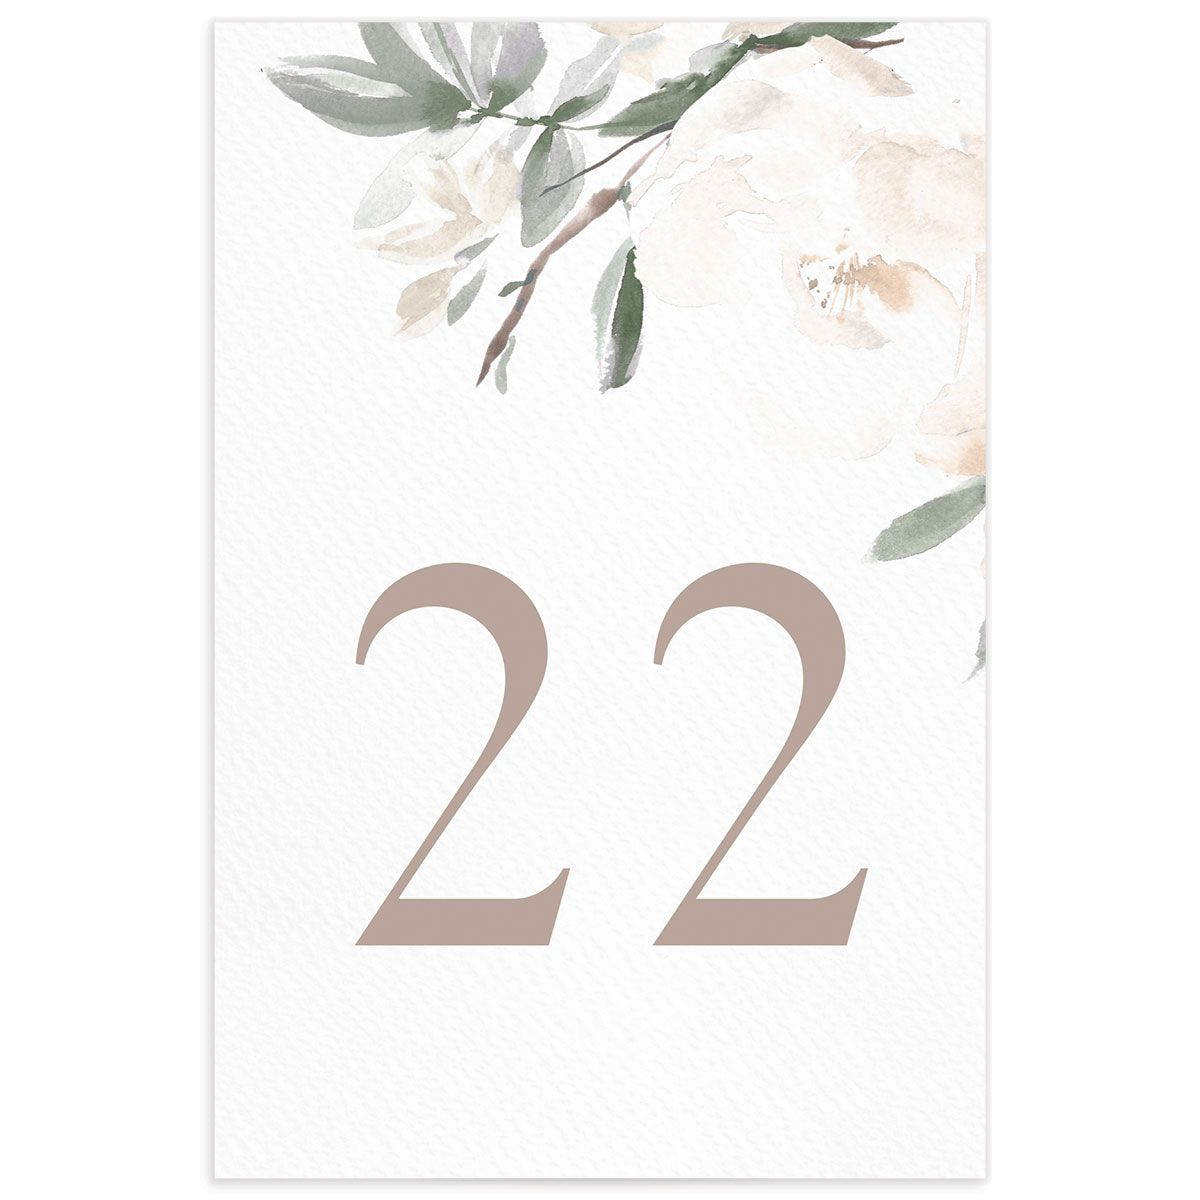 Elegant Garden table numbers in green back